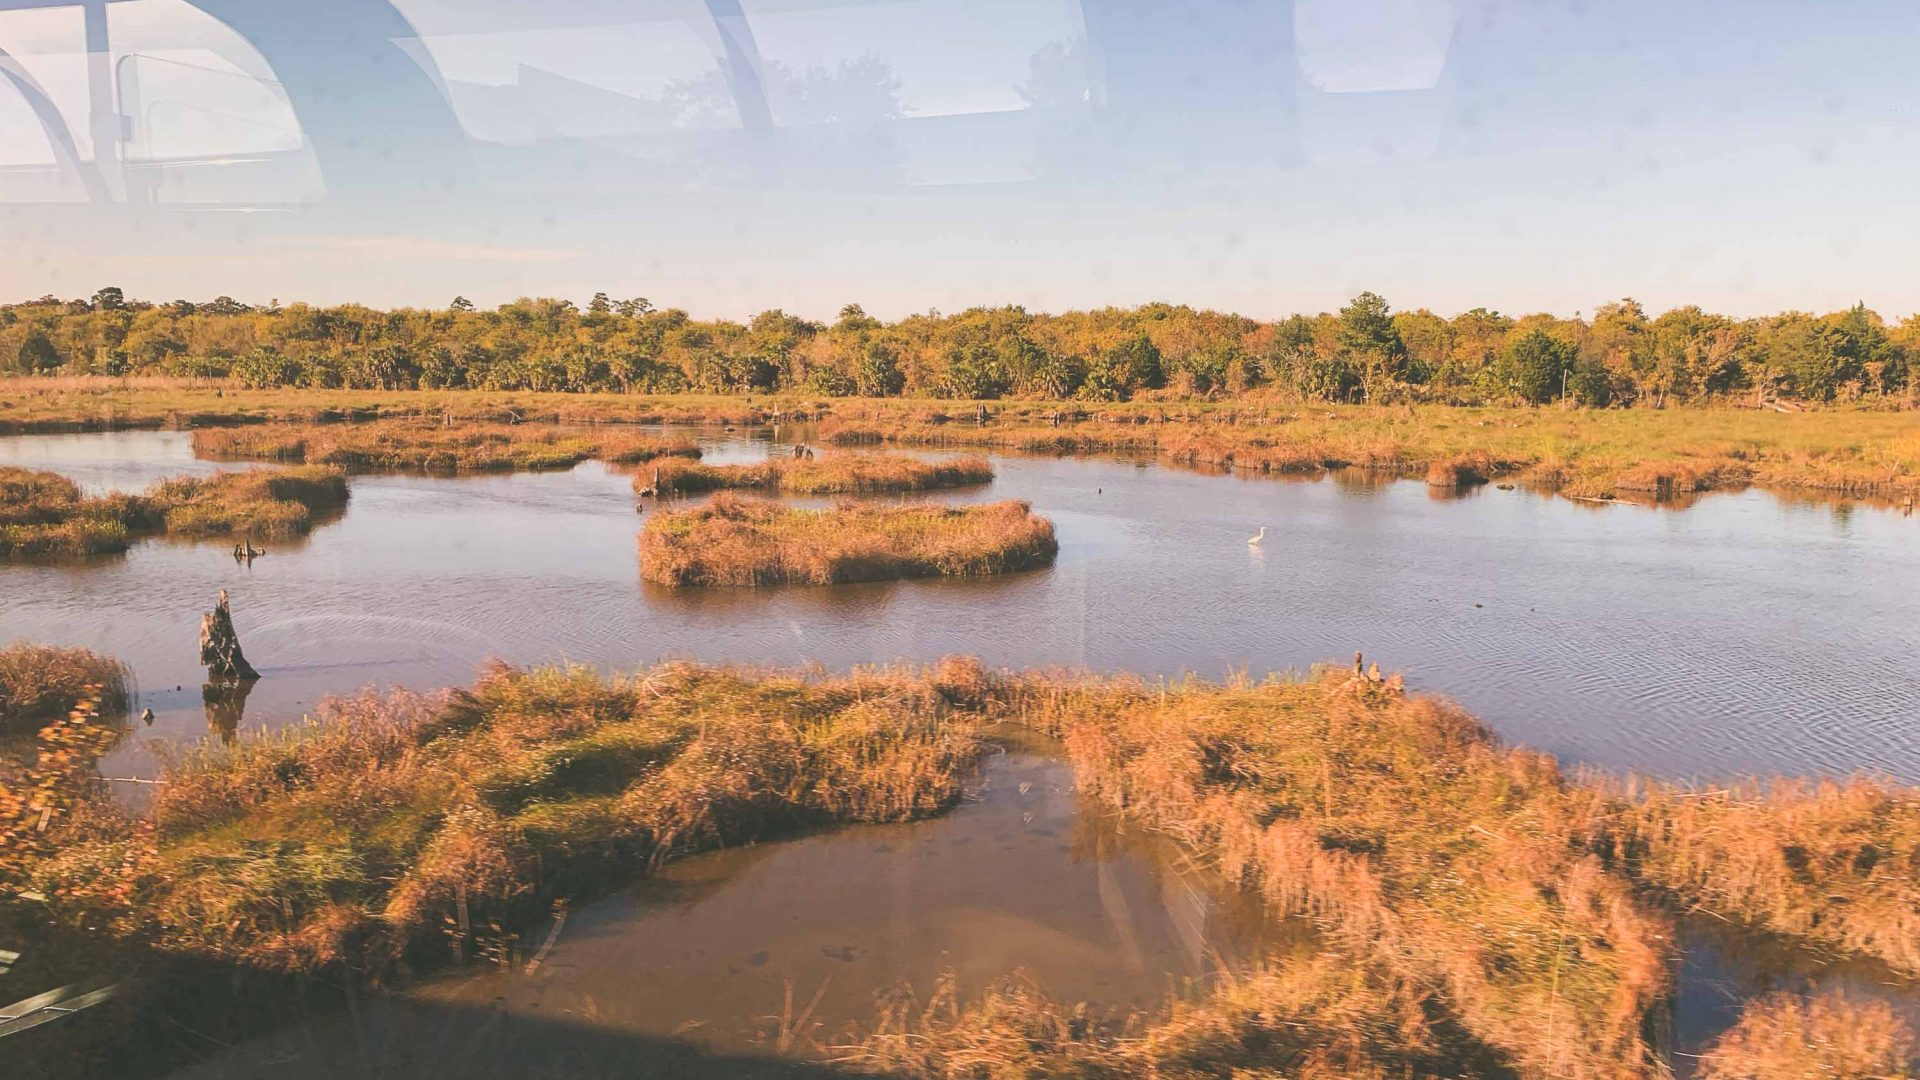 Views out across the bayou (marshy lakes and wetlands) of Louisiana from thre lounge ca.